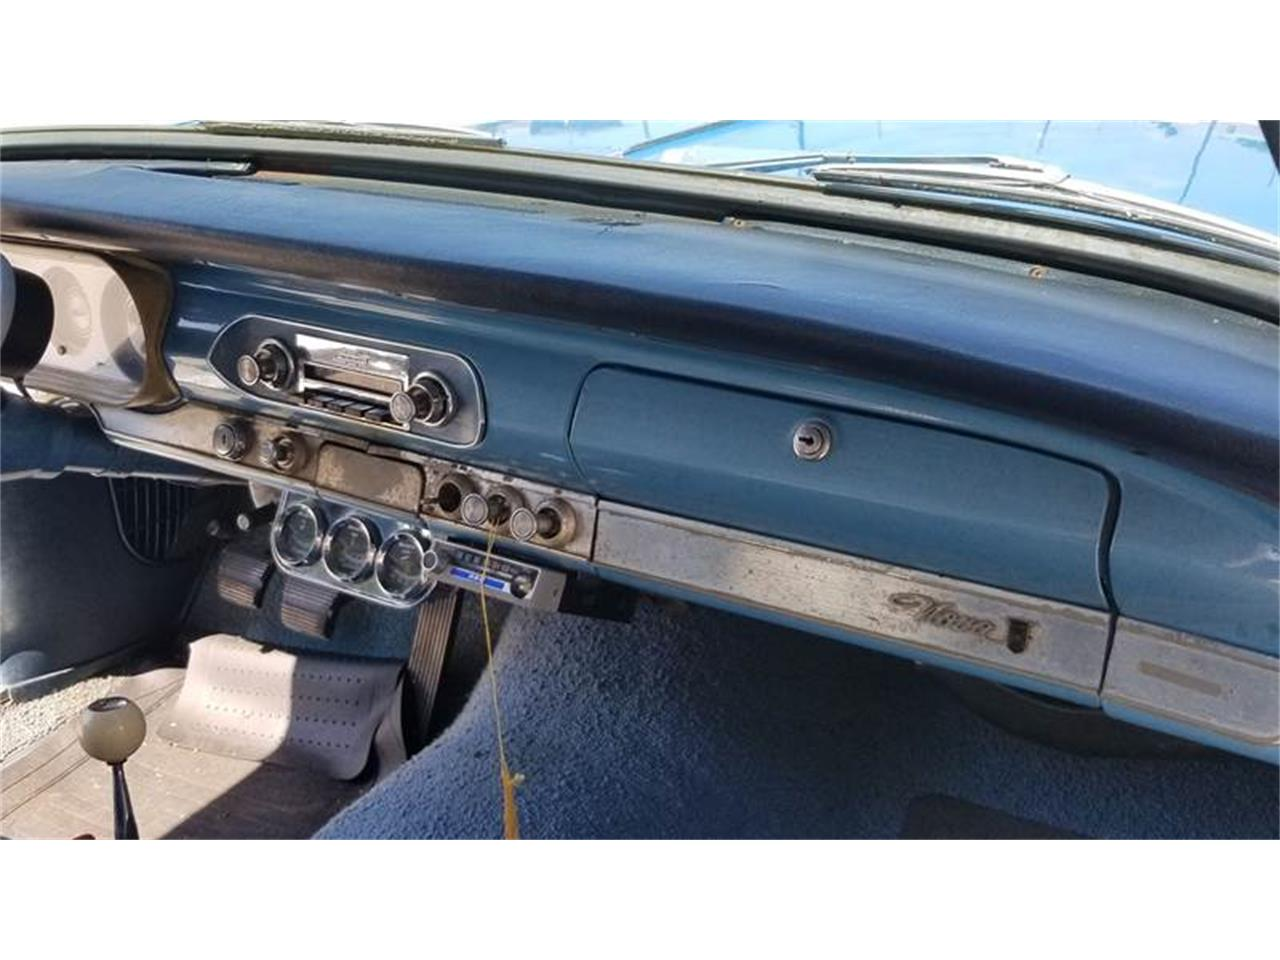 1965 Chevrolet Nova for sale in Taylorsville, NC – photo 17